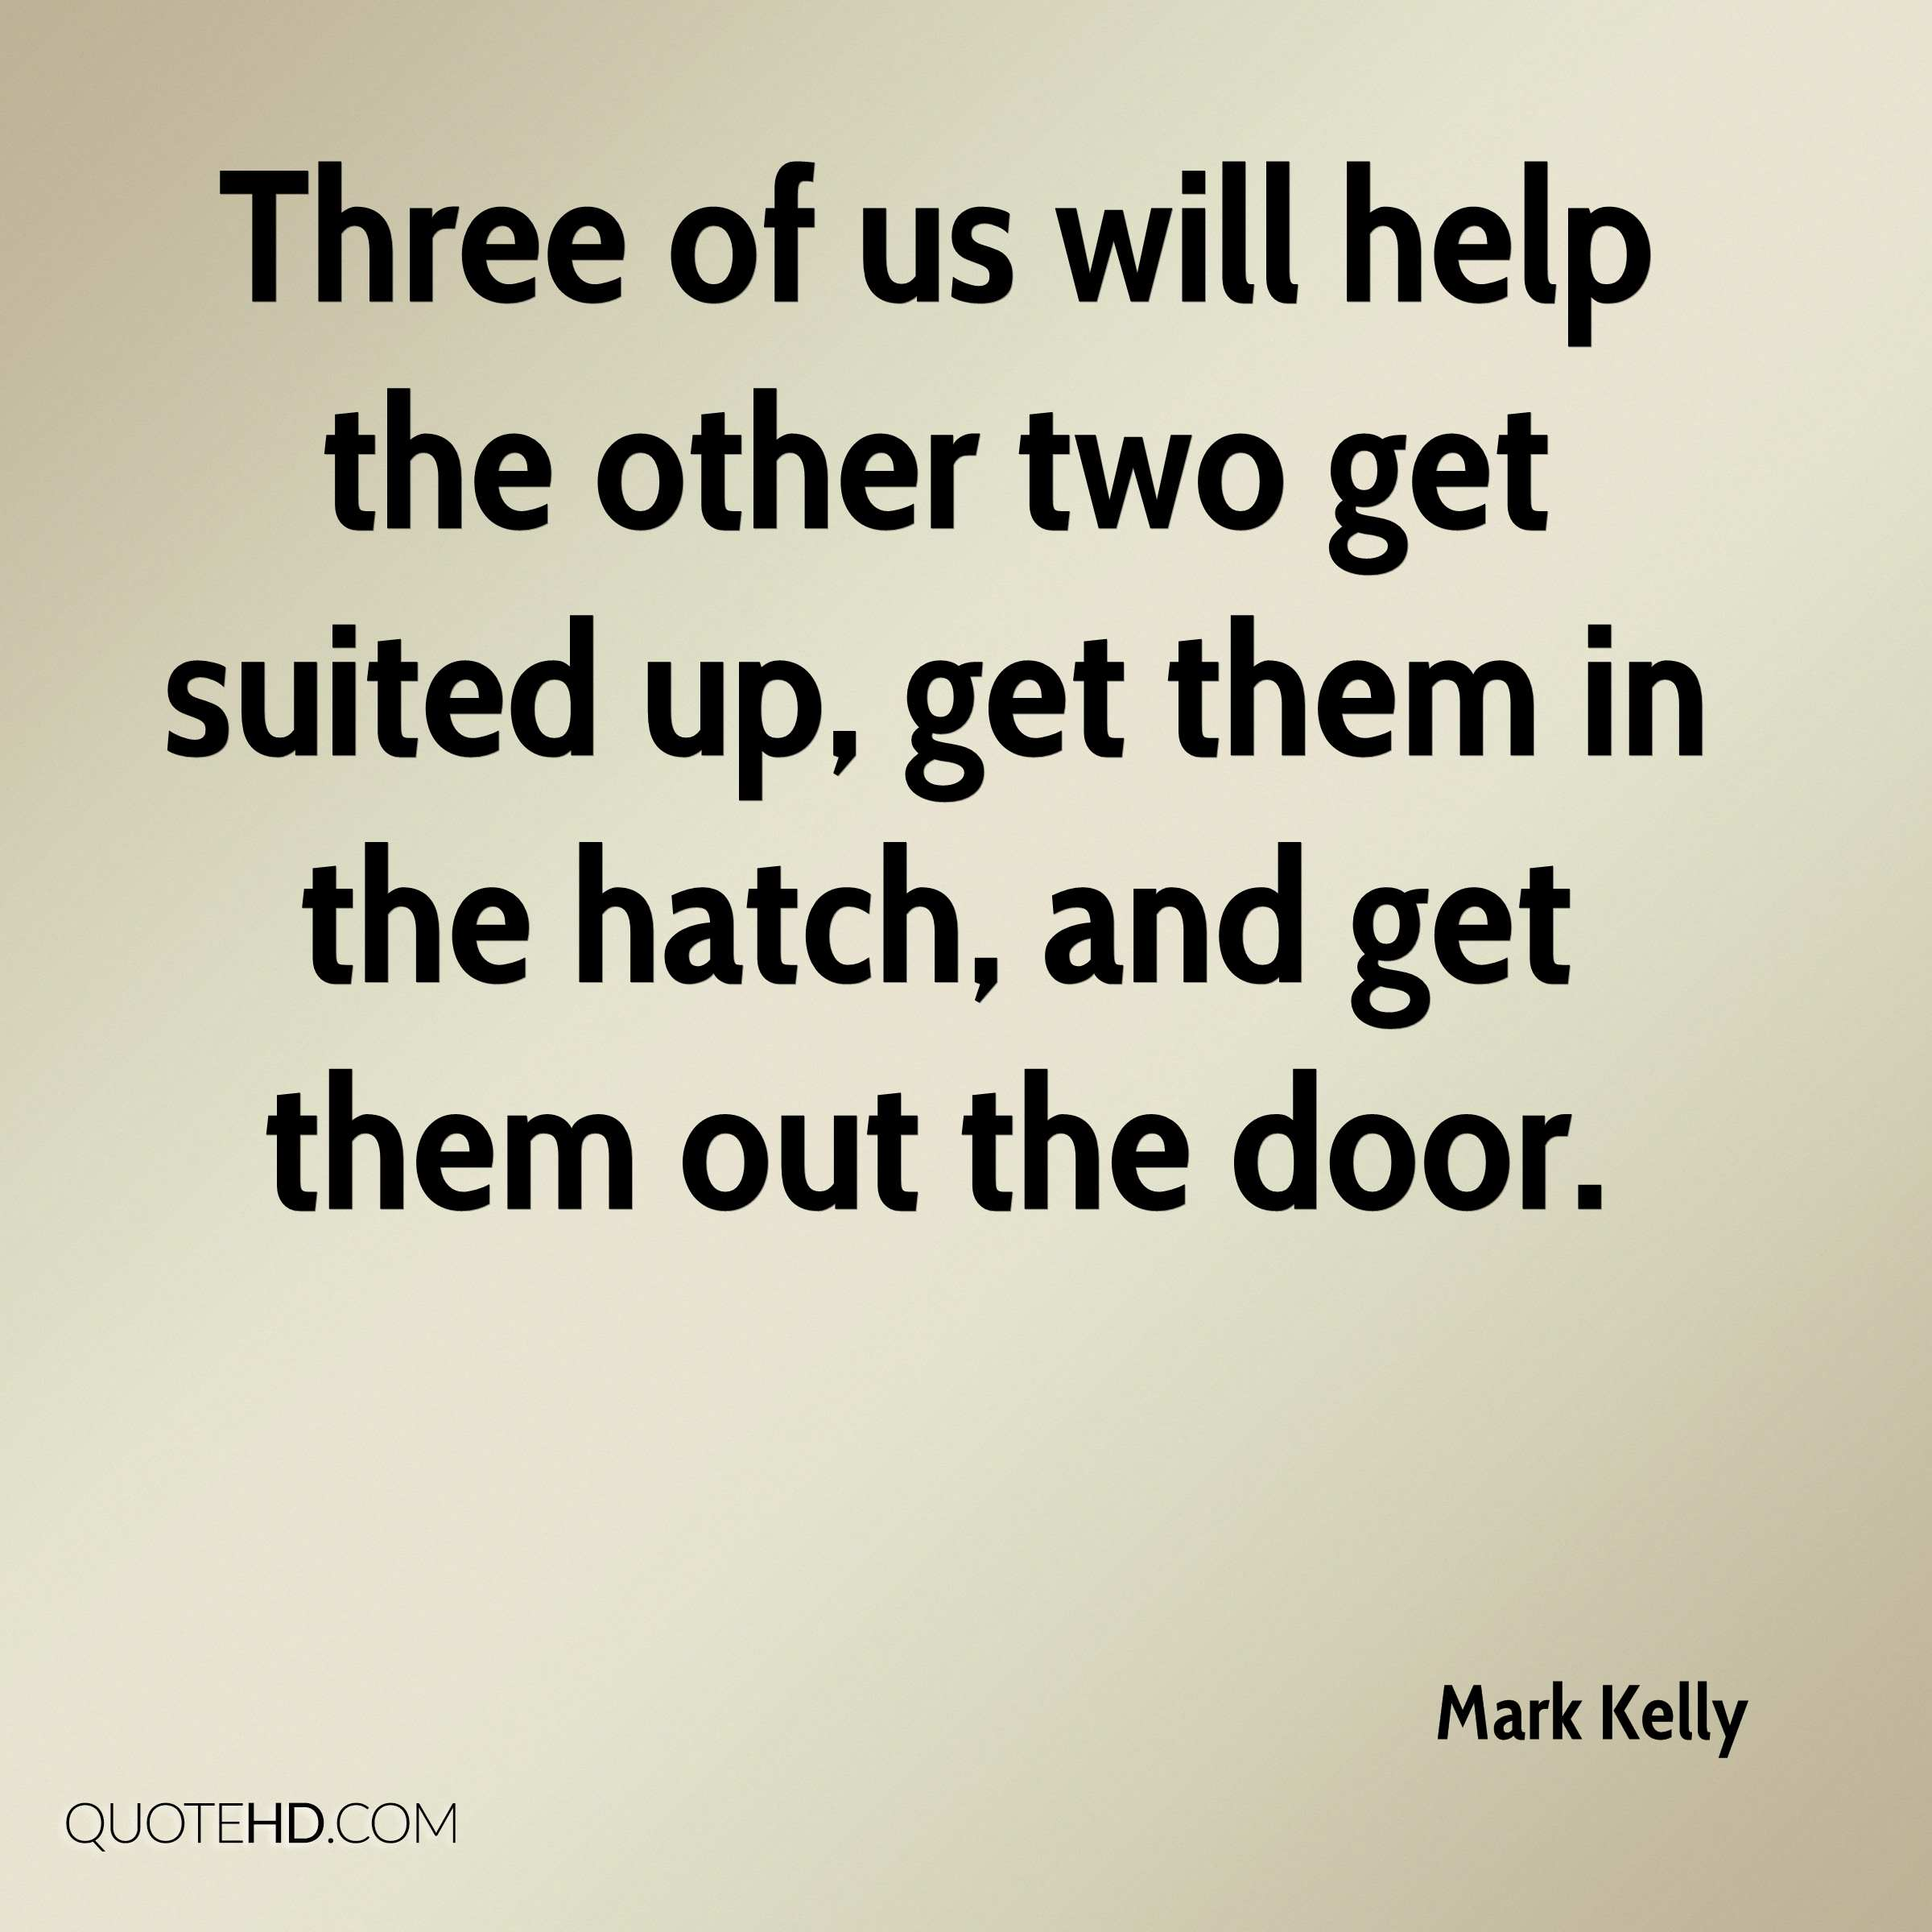 Three of us will help the other two get suited up, get them in the hatch, and get them out the door.